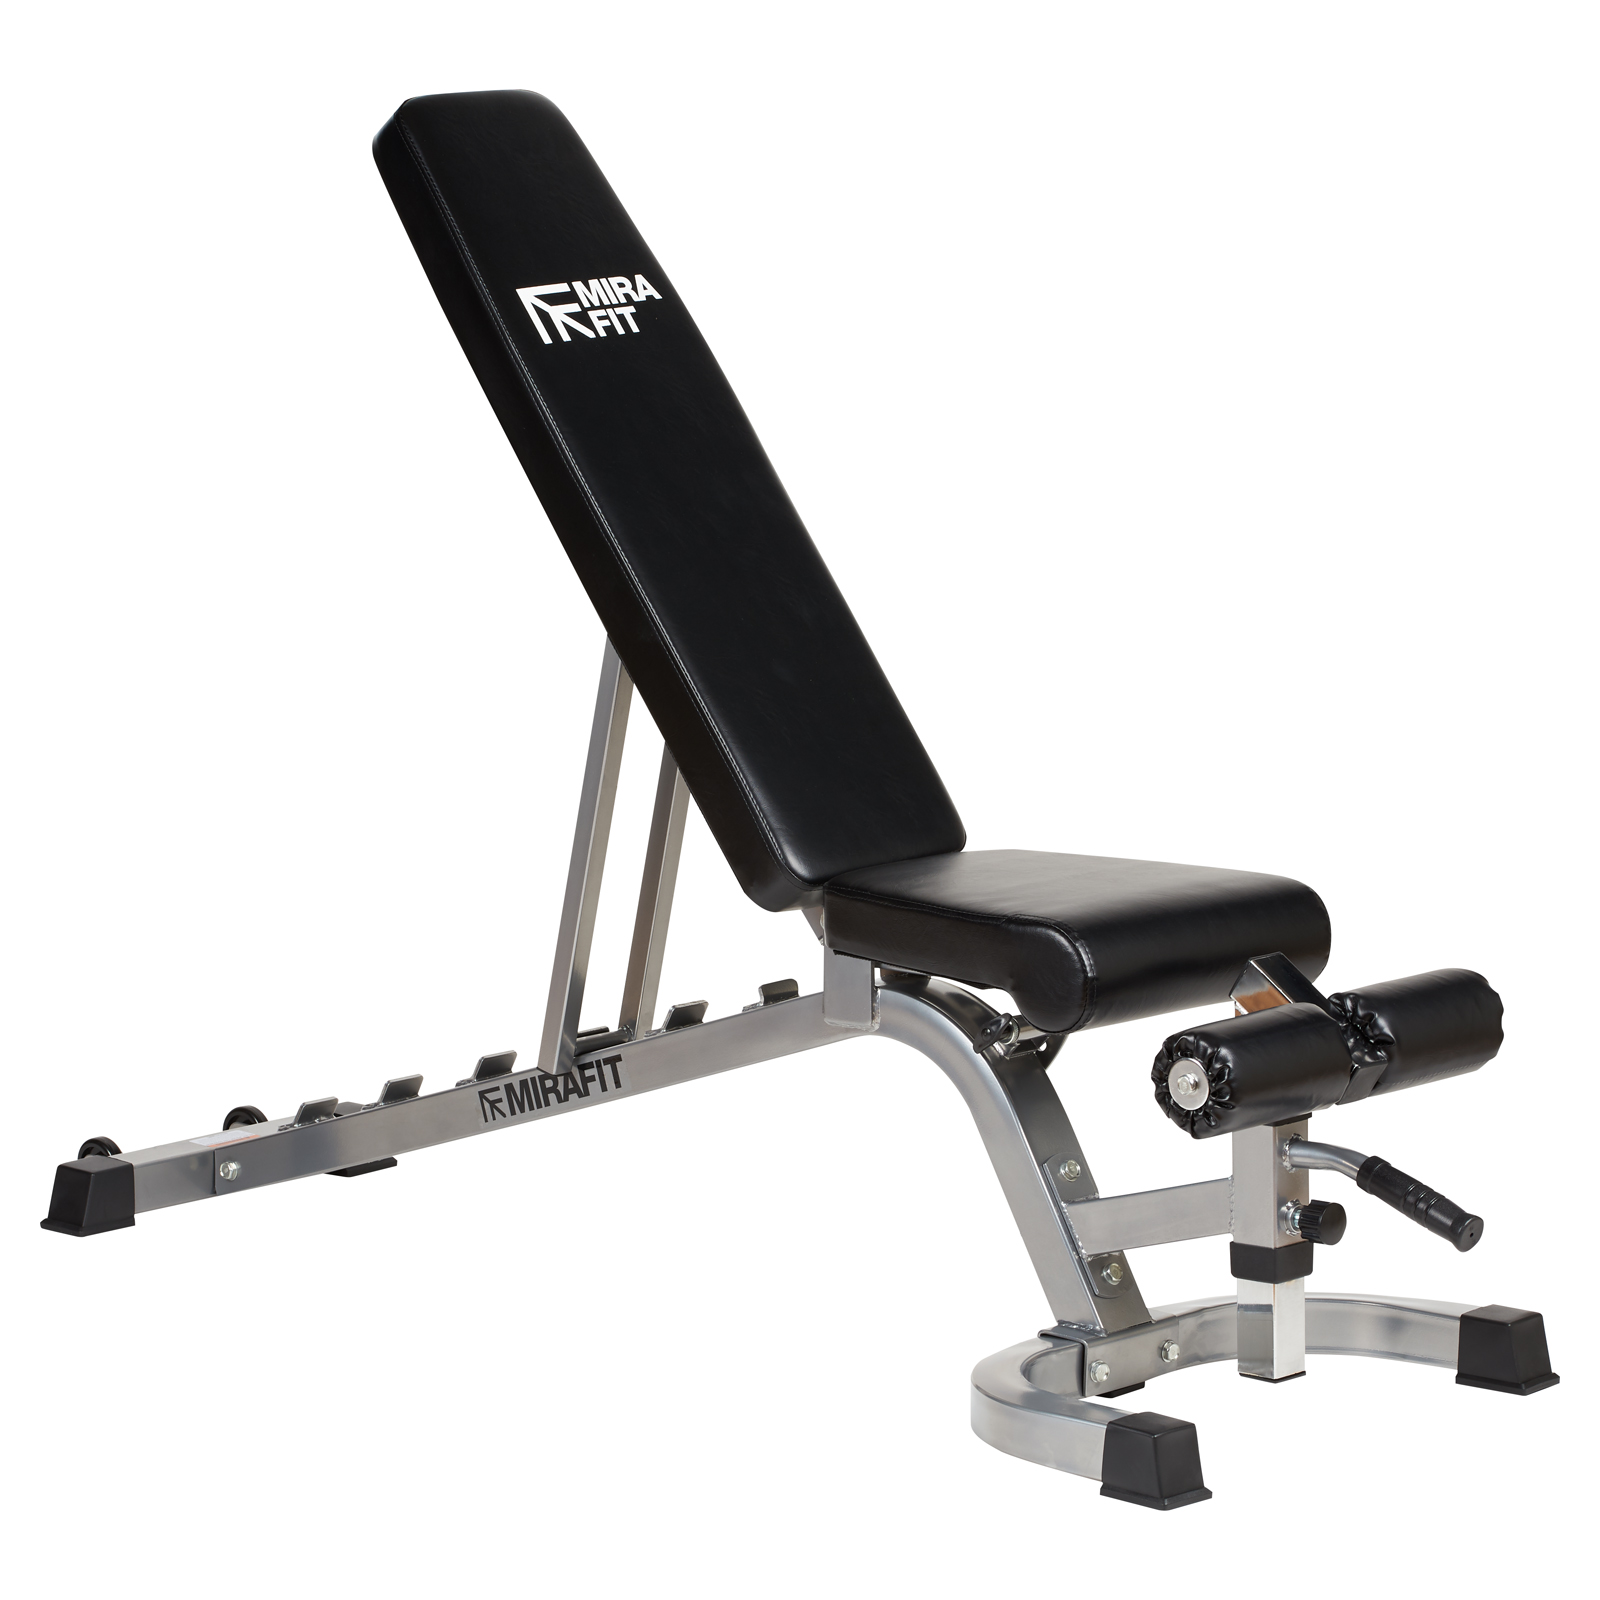 Mirafit Adjustable Fid Flat Incline Decline Weight Bench